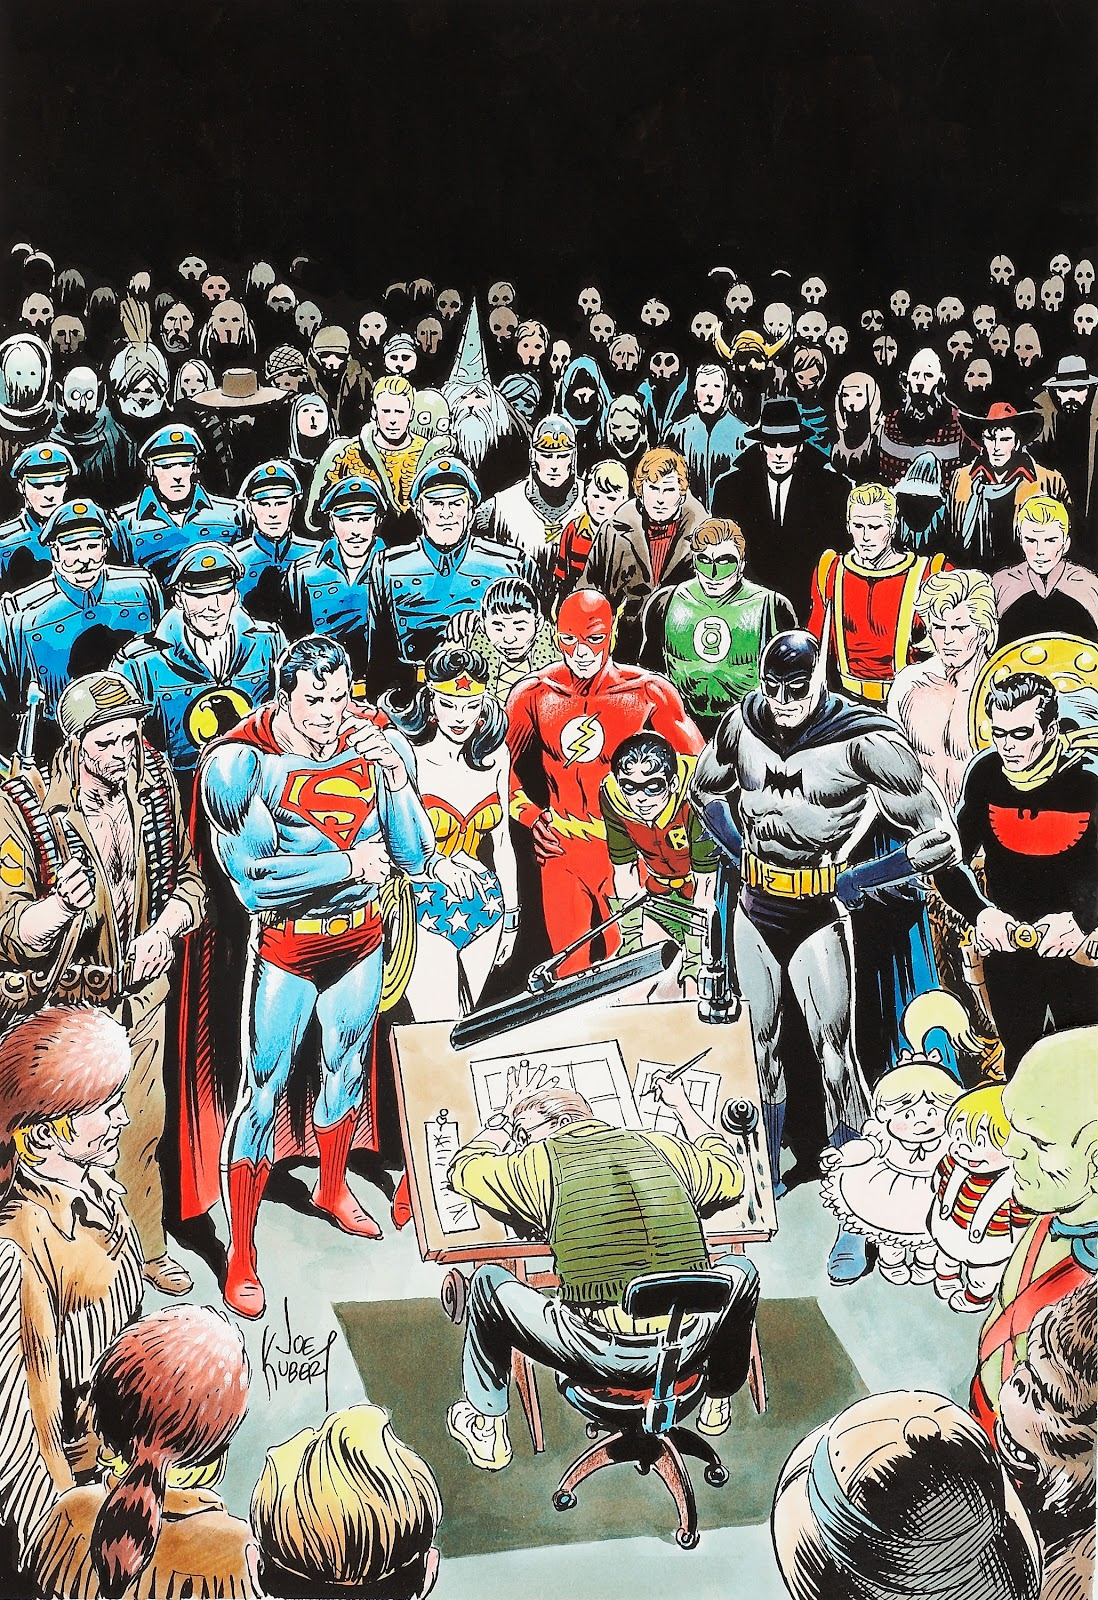 """Joe Kubert's Self """"Portrait"""" Surrounded by Many of the Characters He Illustrated"""